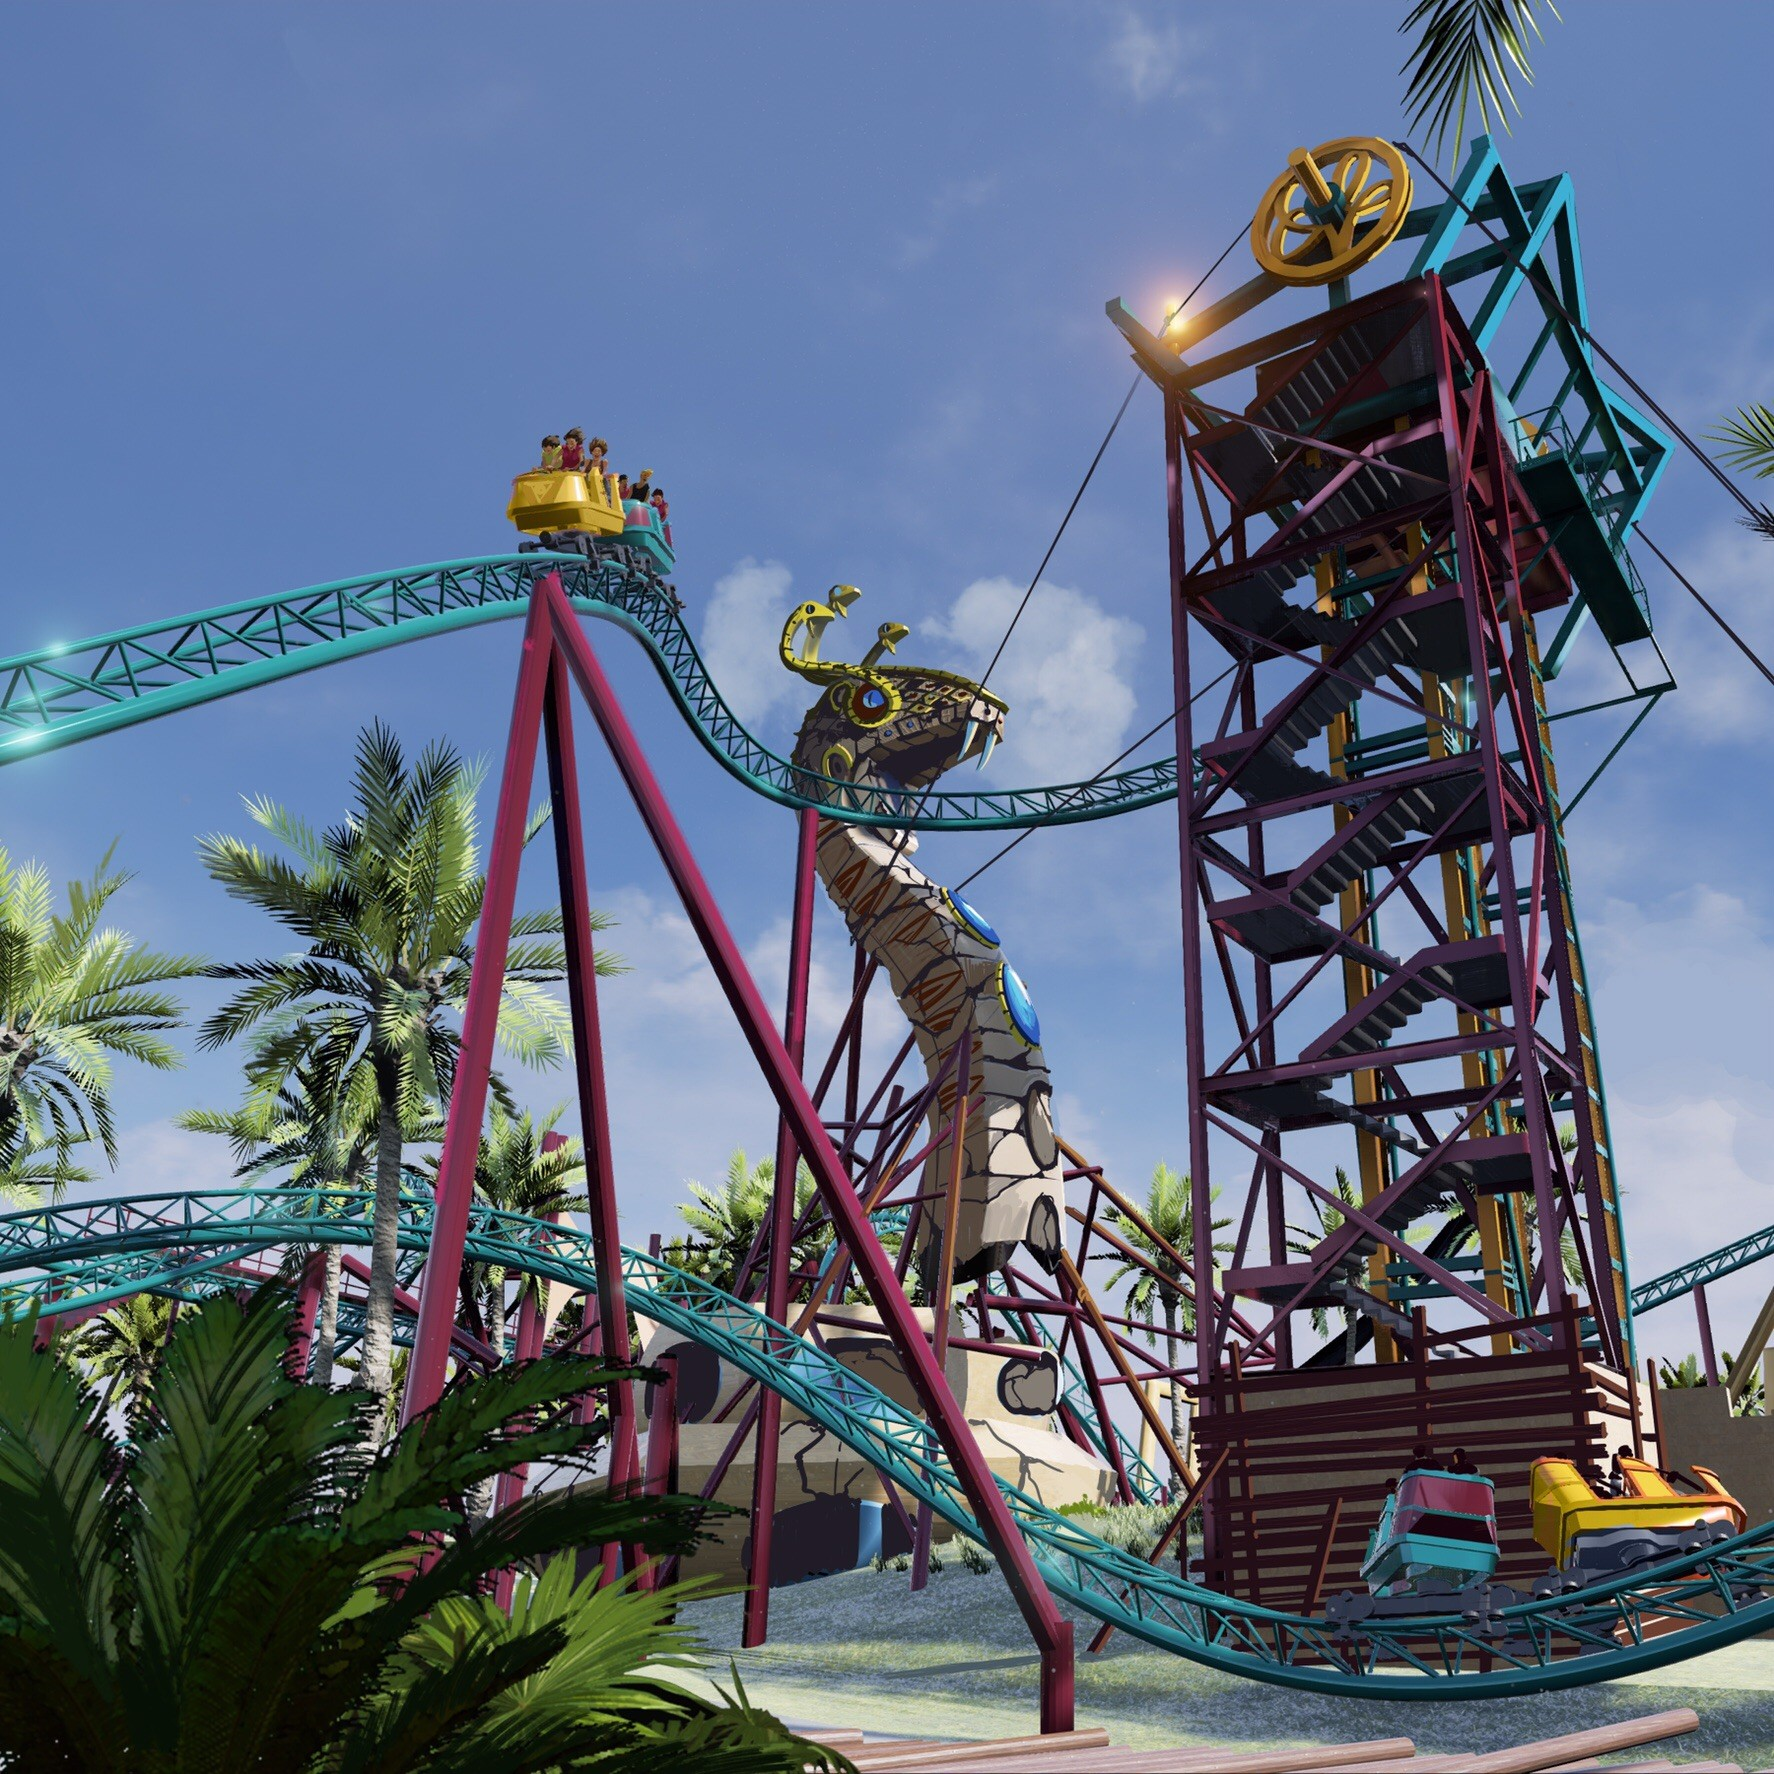 Video cobra 39 s curse family coaster coming to busch - Busch gardens tampa bay cobra s curse ...